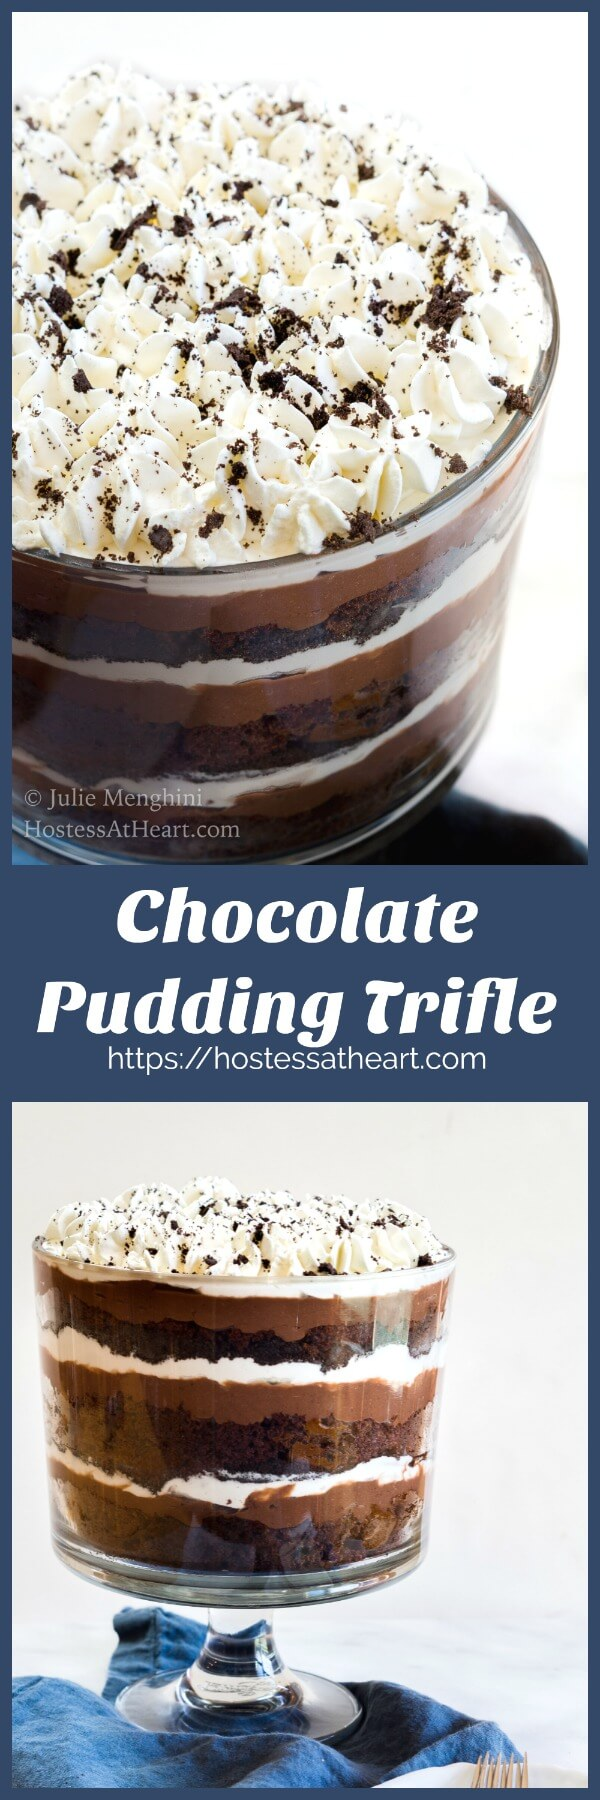 This Chocolate Pudding Trifle has delicious layers of chocolate cake, pudding, cookie crumbs and whipped cream. It is dreamy and creamy goodness! | HostessAtHeart